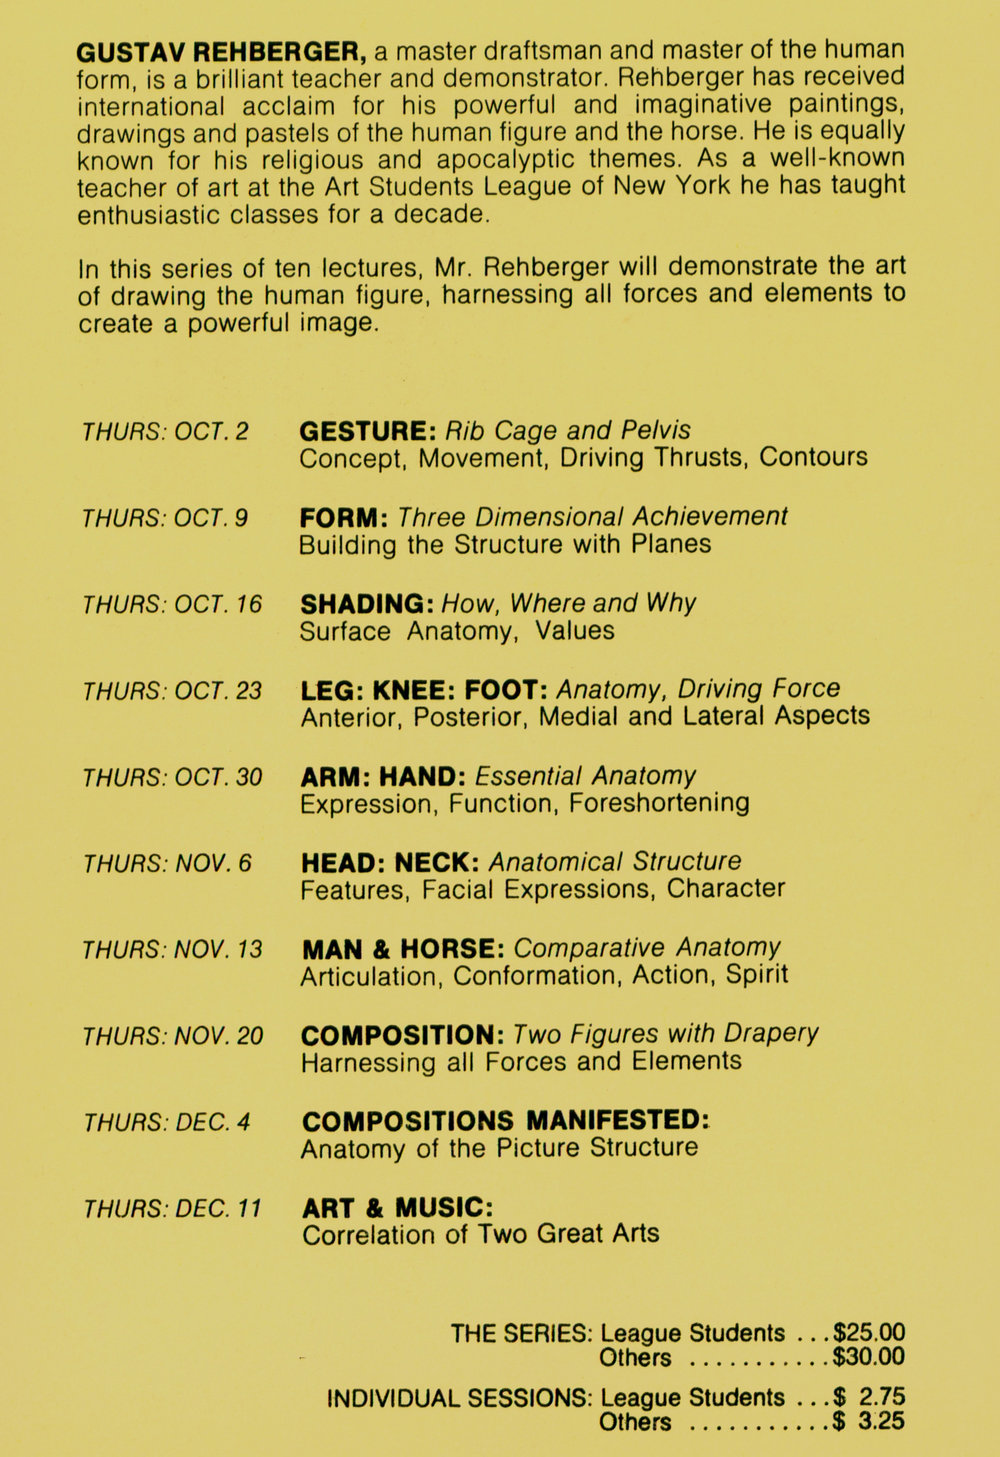 1980 Art Students League of NY Lecture Brochure #1a.JPG